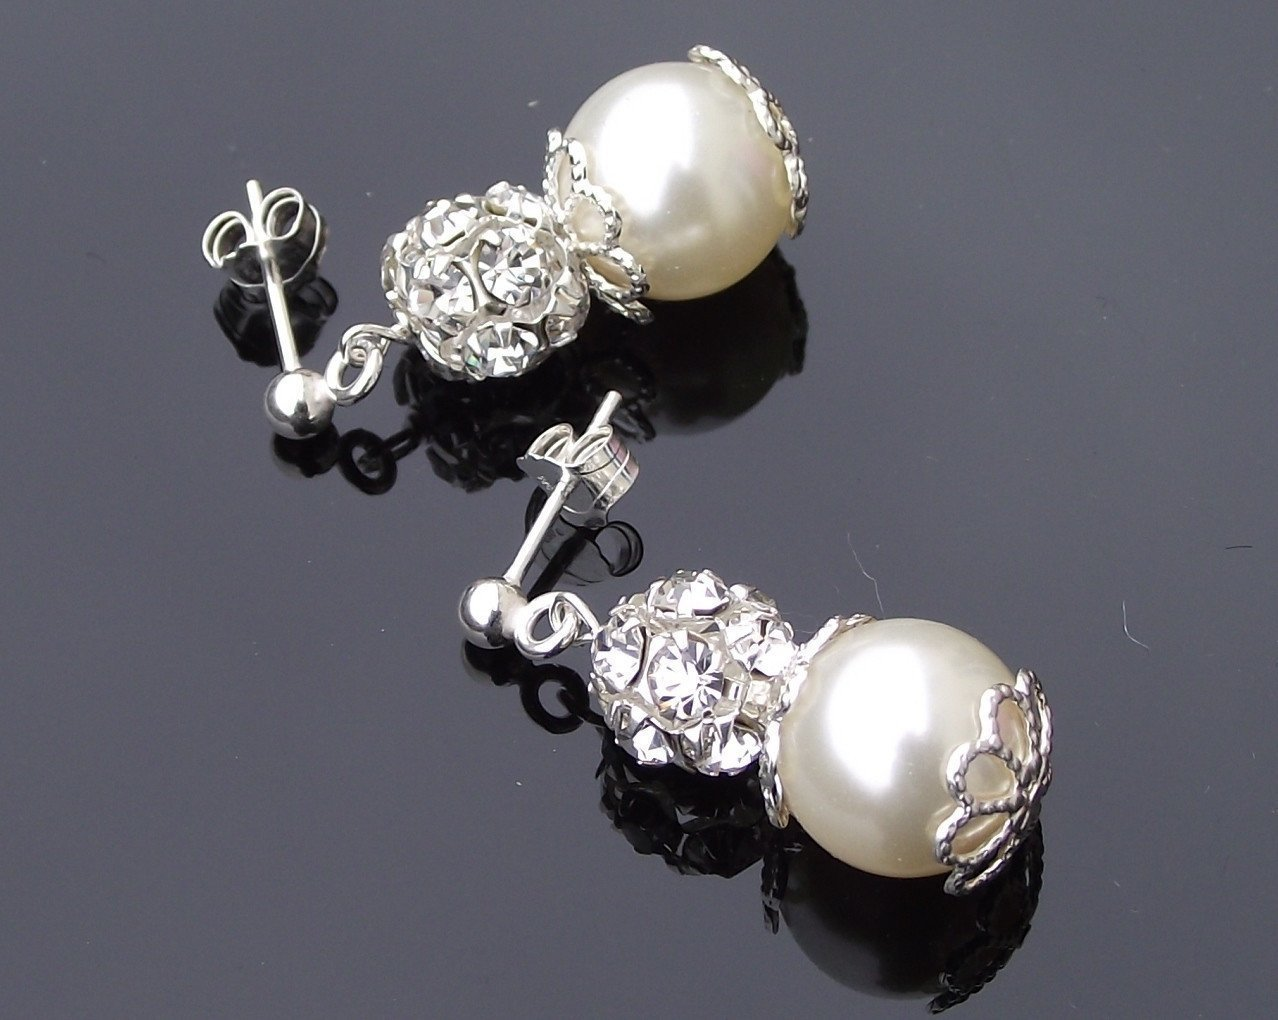 Wedding Earrings - Crystal Encrusted Wedding Pearl Earrings, Filigree Style, Monroe